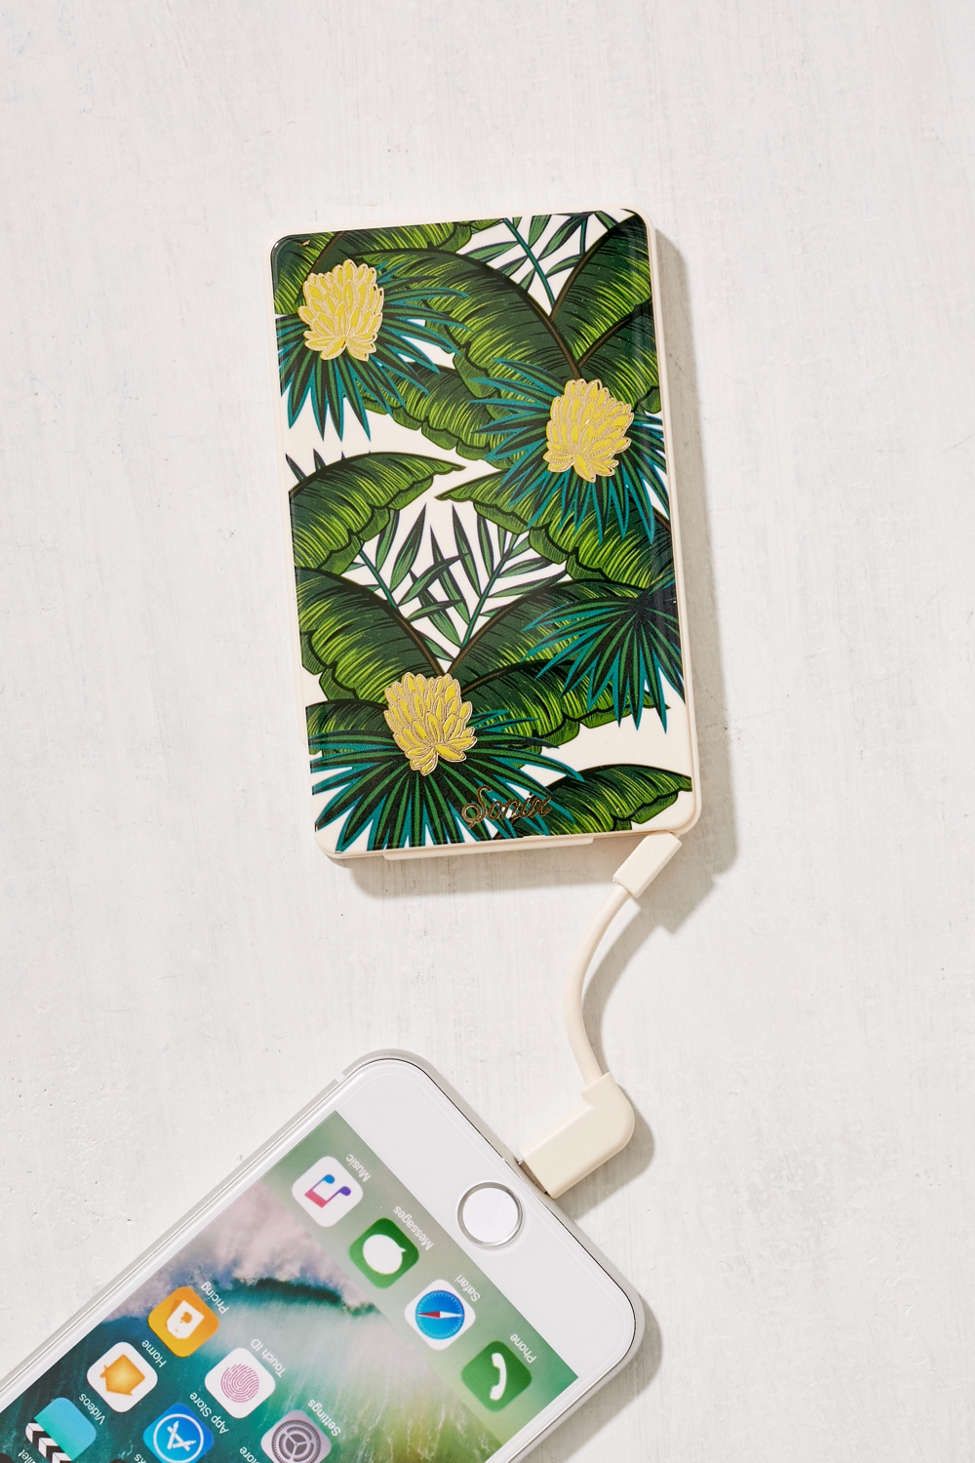 Slide View: 1: Sonix Coco Banana Portable Power iPhone Charger